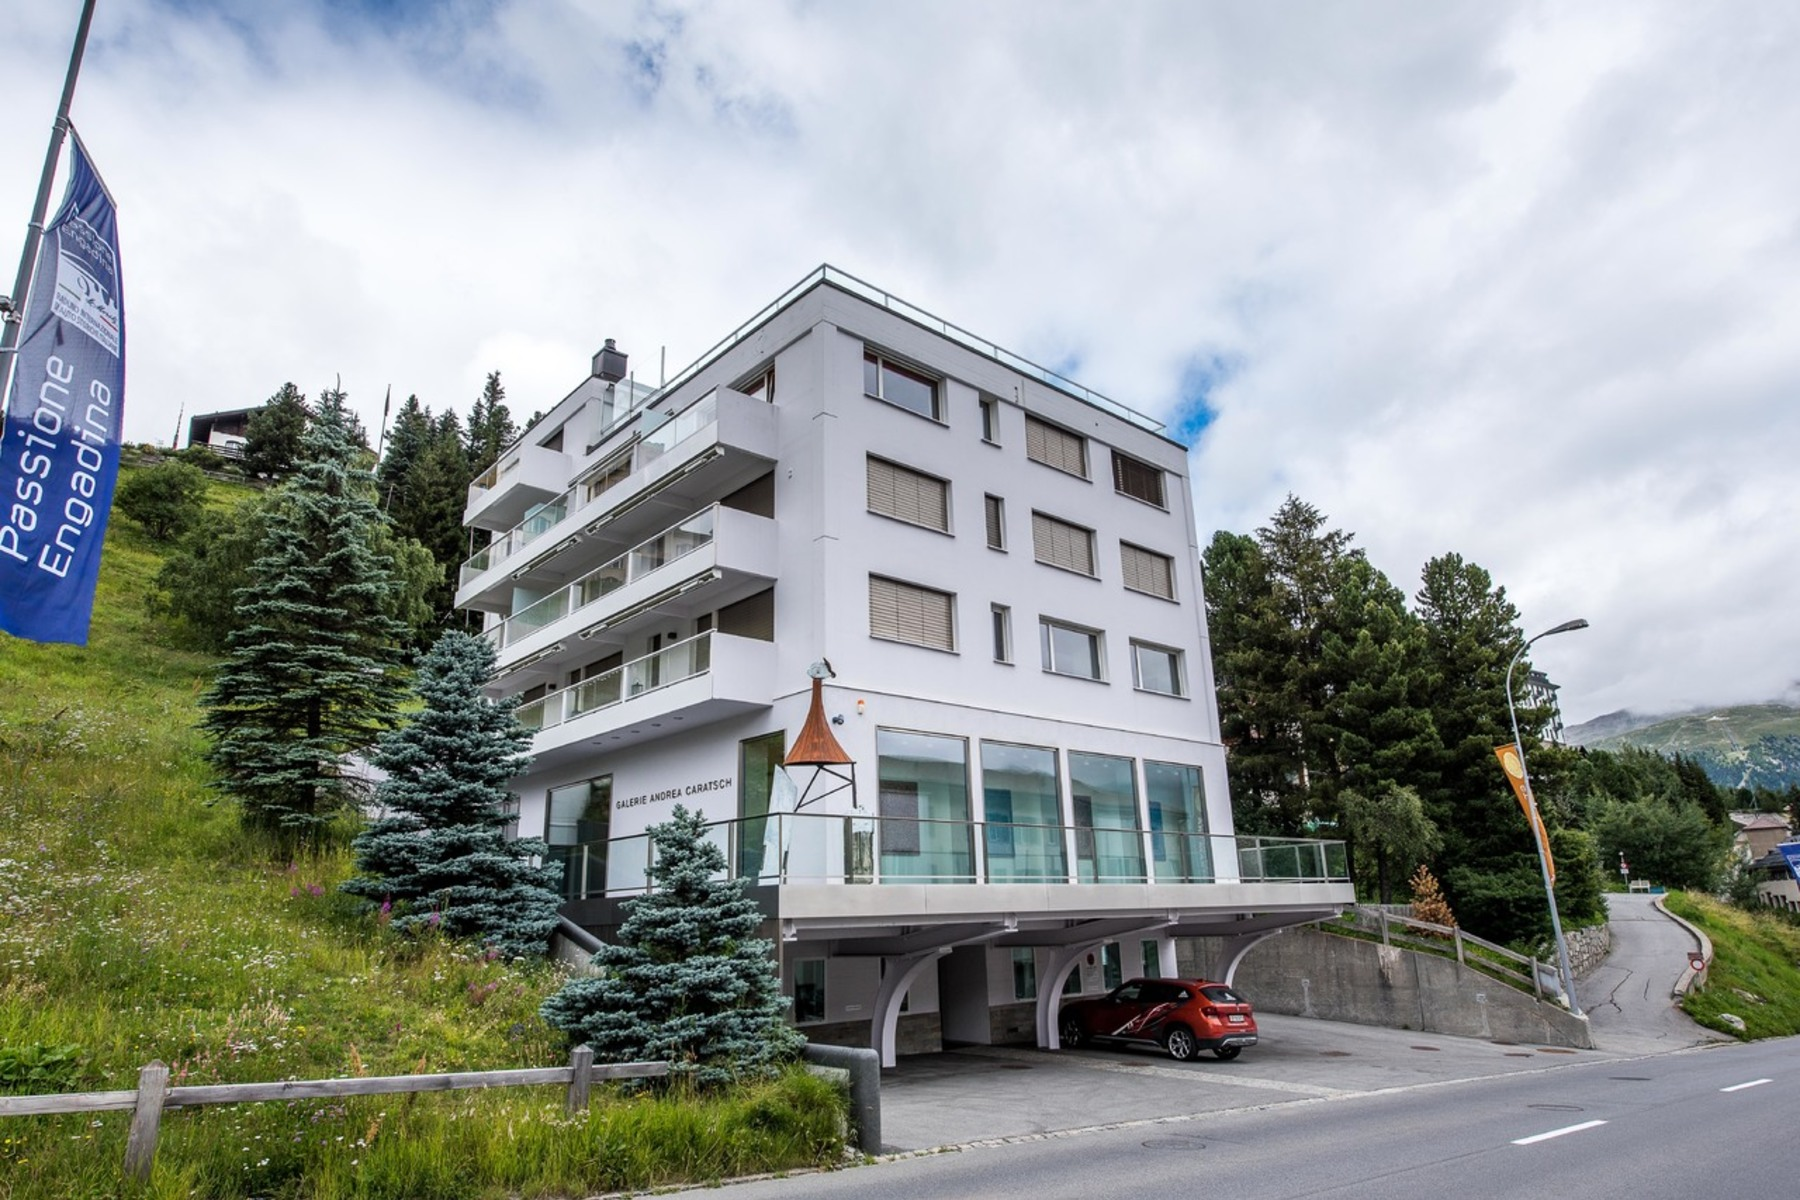 Apartamento para Venda às 4 ½ rooms apartment in St. Moritz, St. Moritz, Grisons, 7500 Suíça